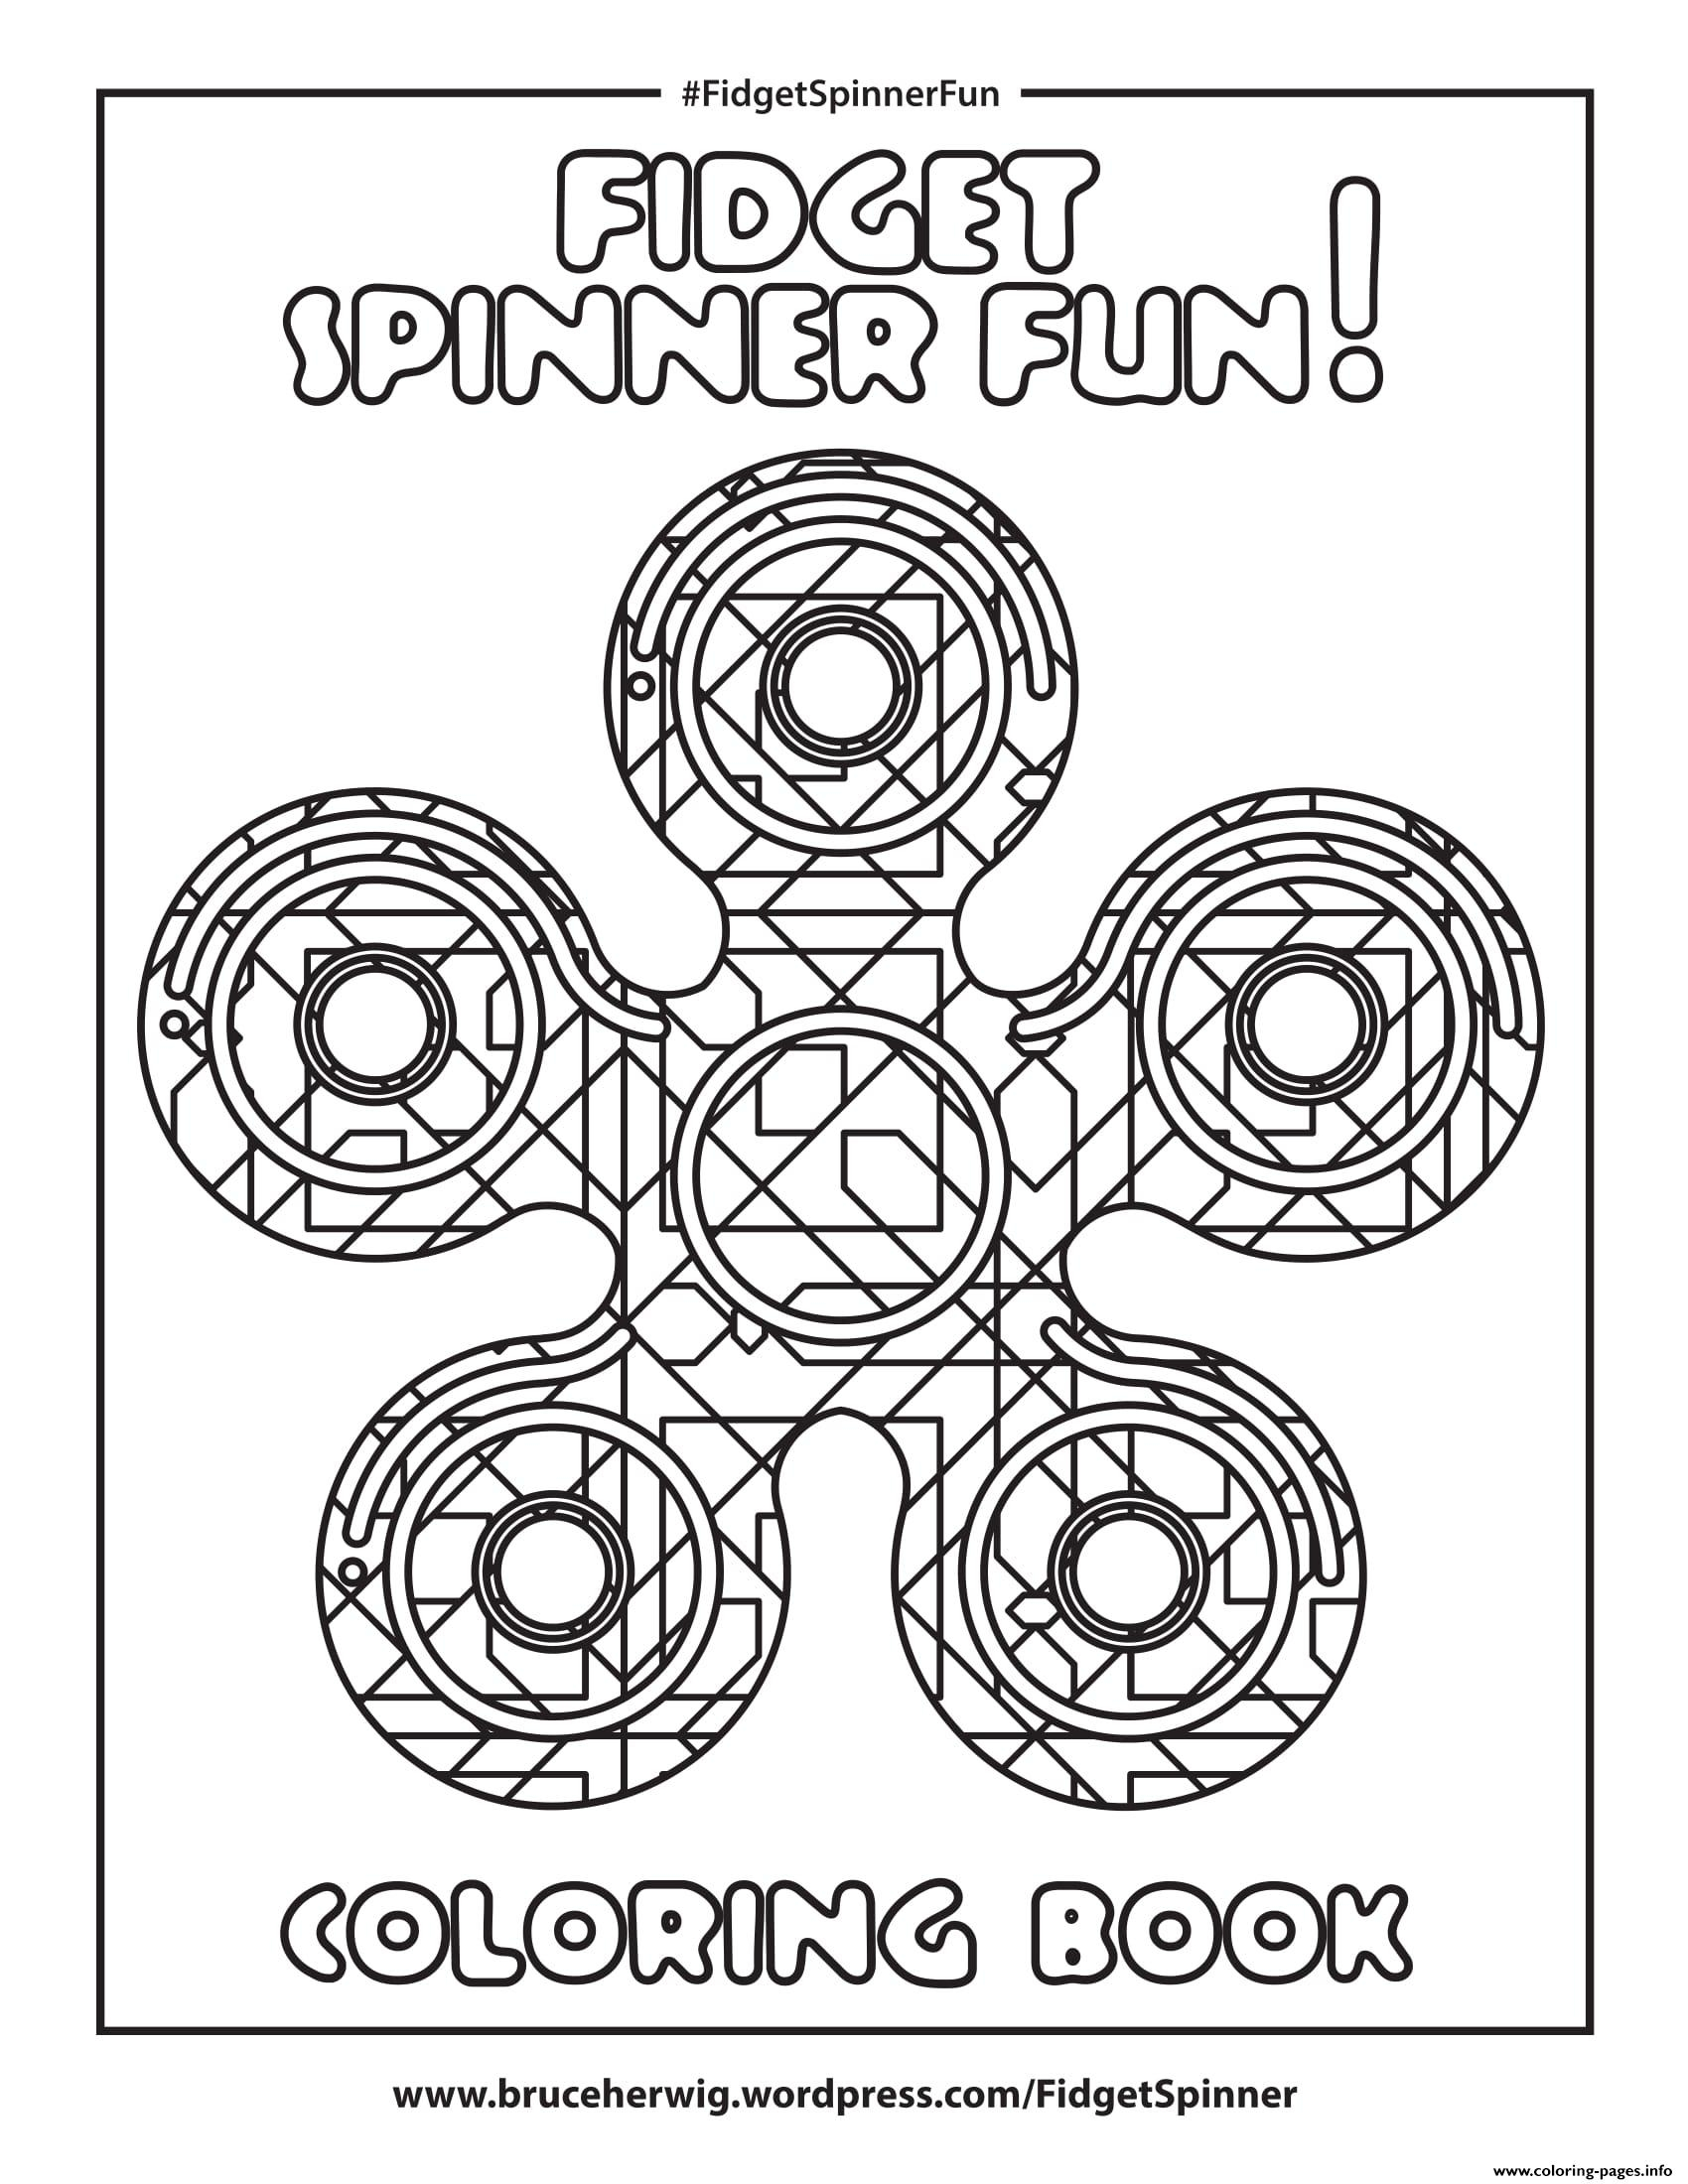 fidget spinner coloring pages - fid spinner fun round mandala zen printable coloring pages book